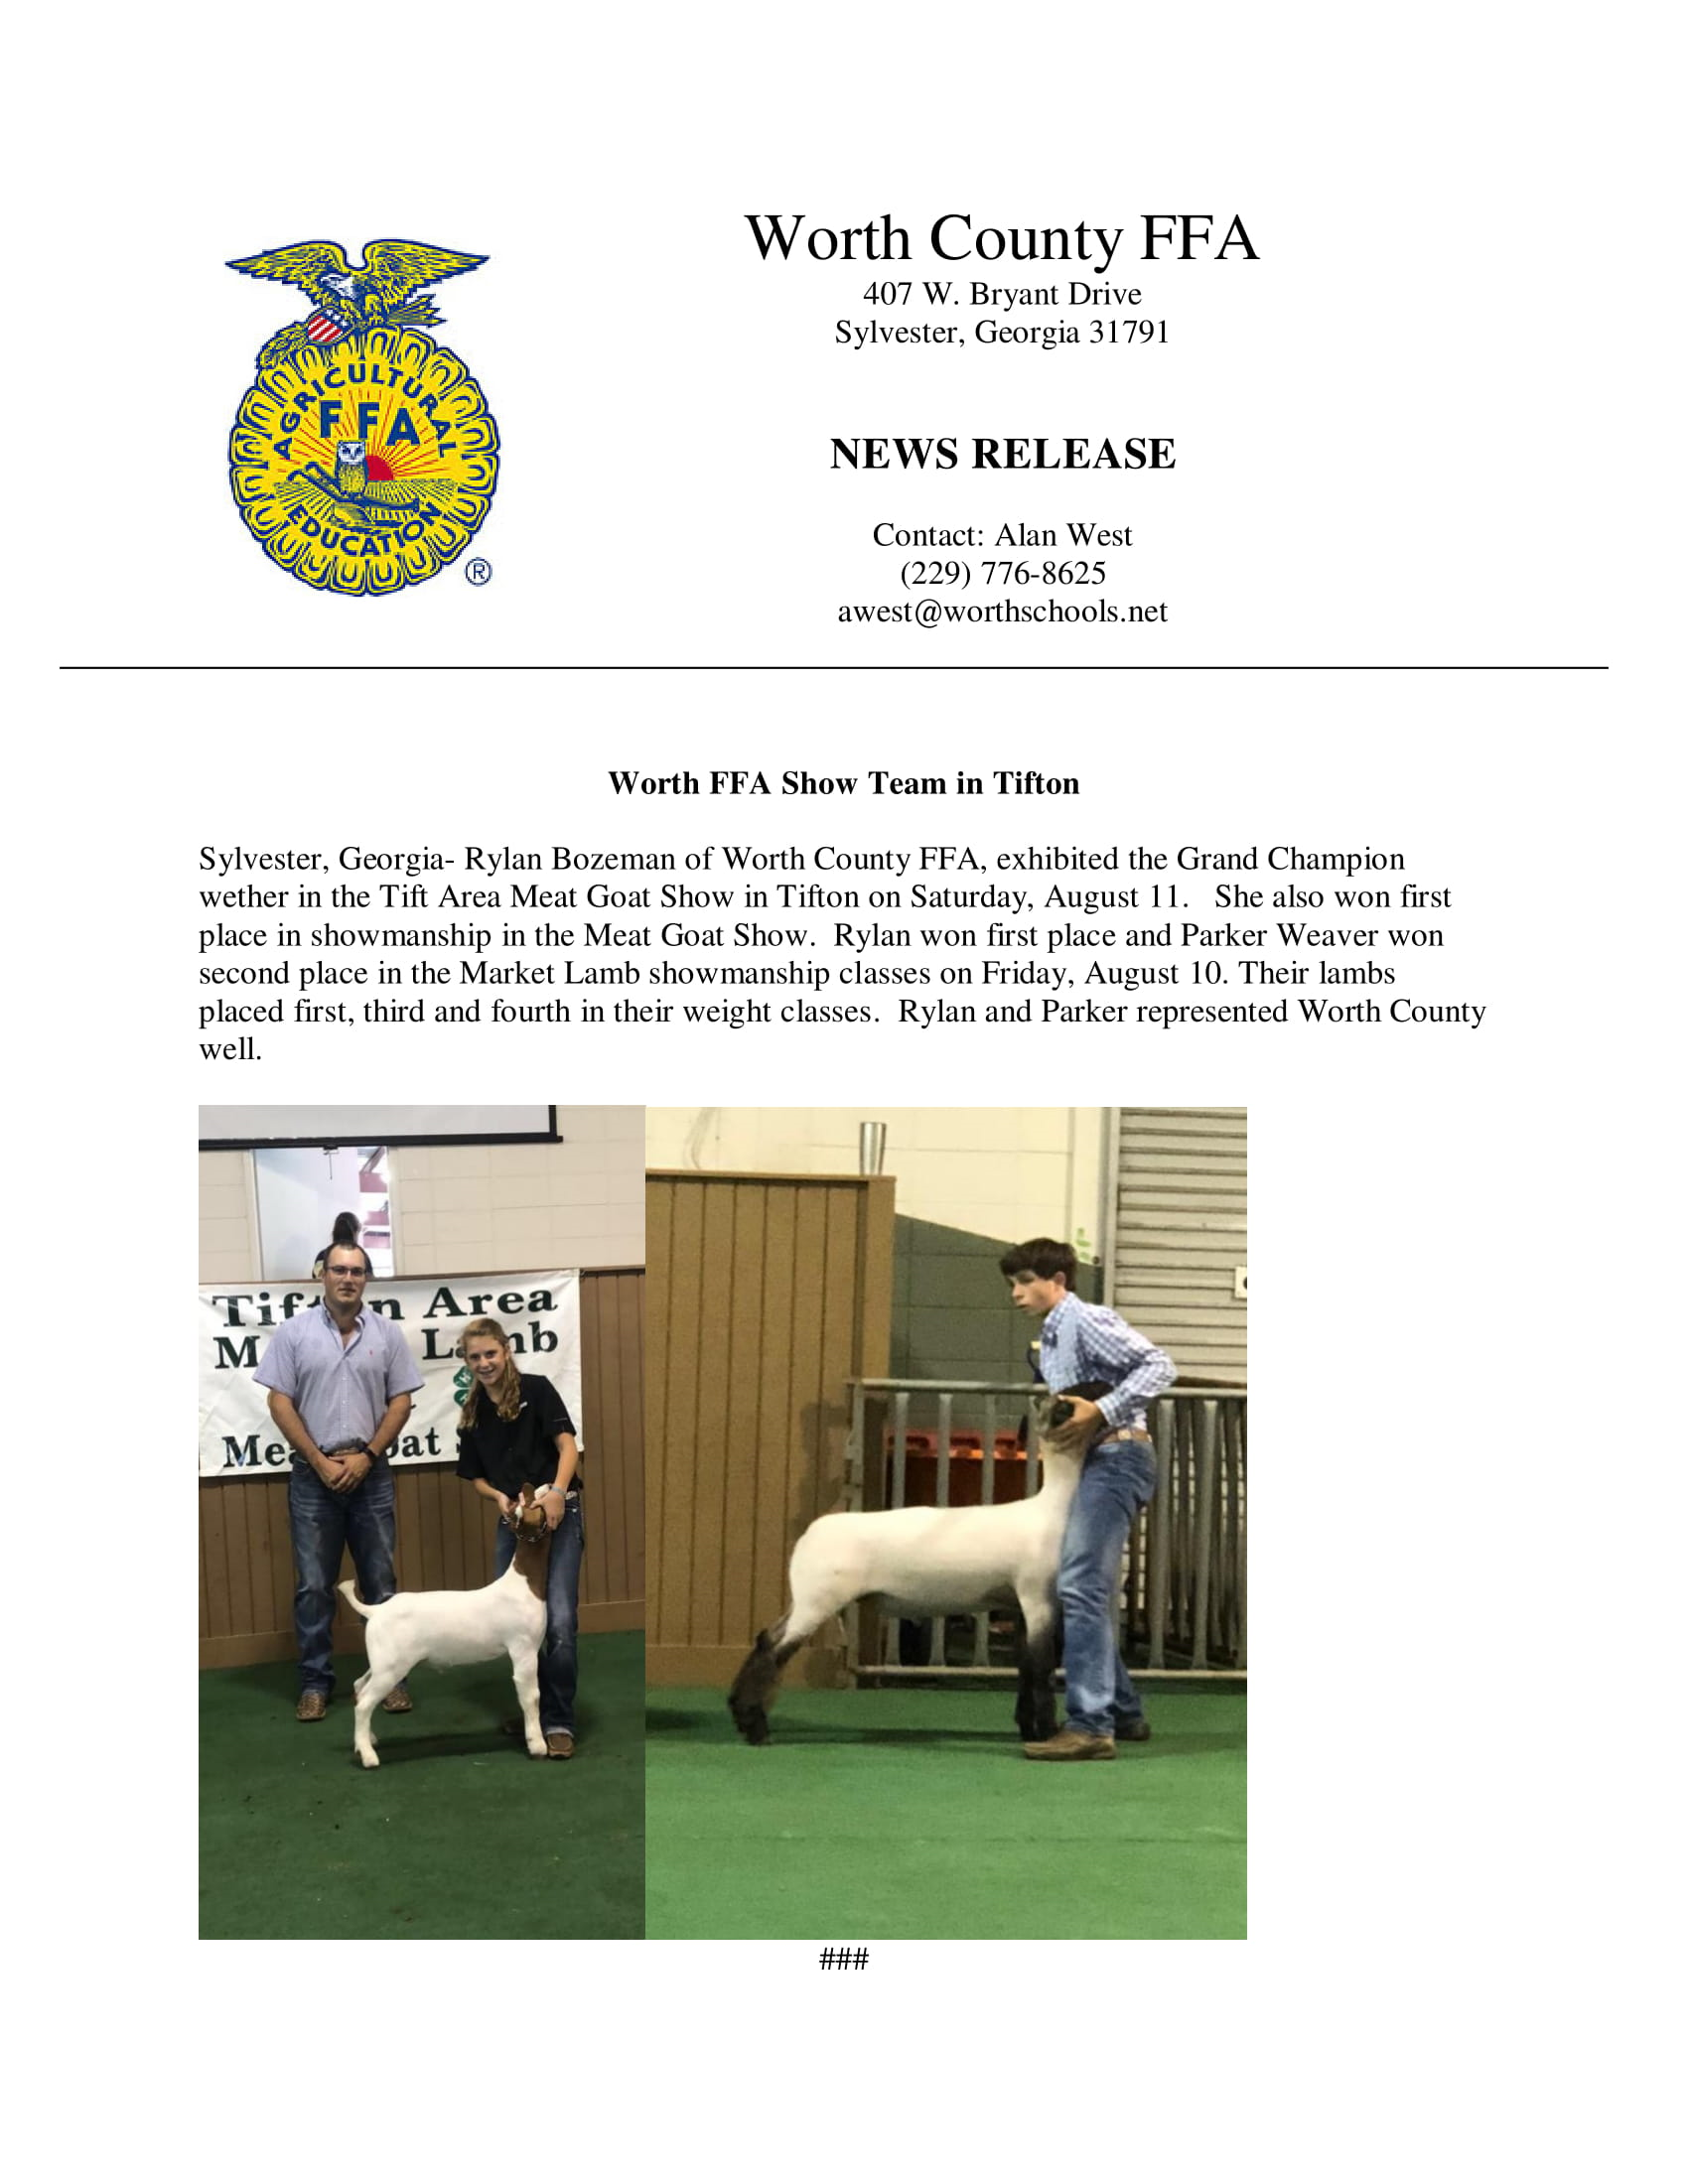 Worth County FFA compete in Tift Area MLMG Show